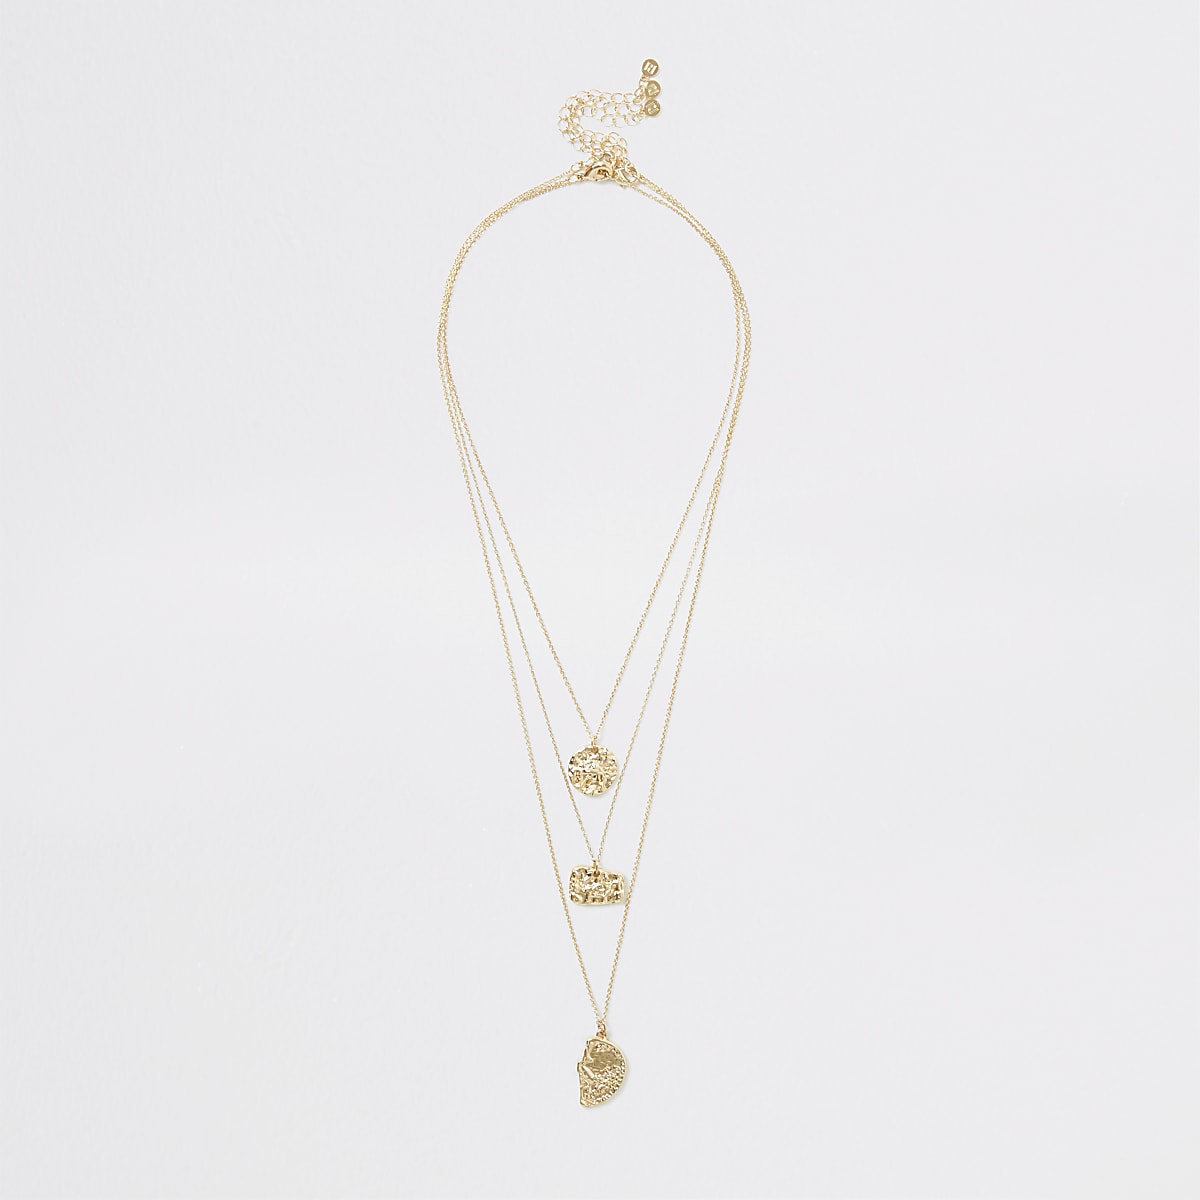 Gold color textured layered necklace